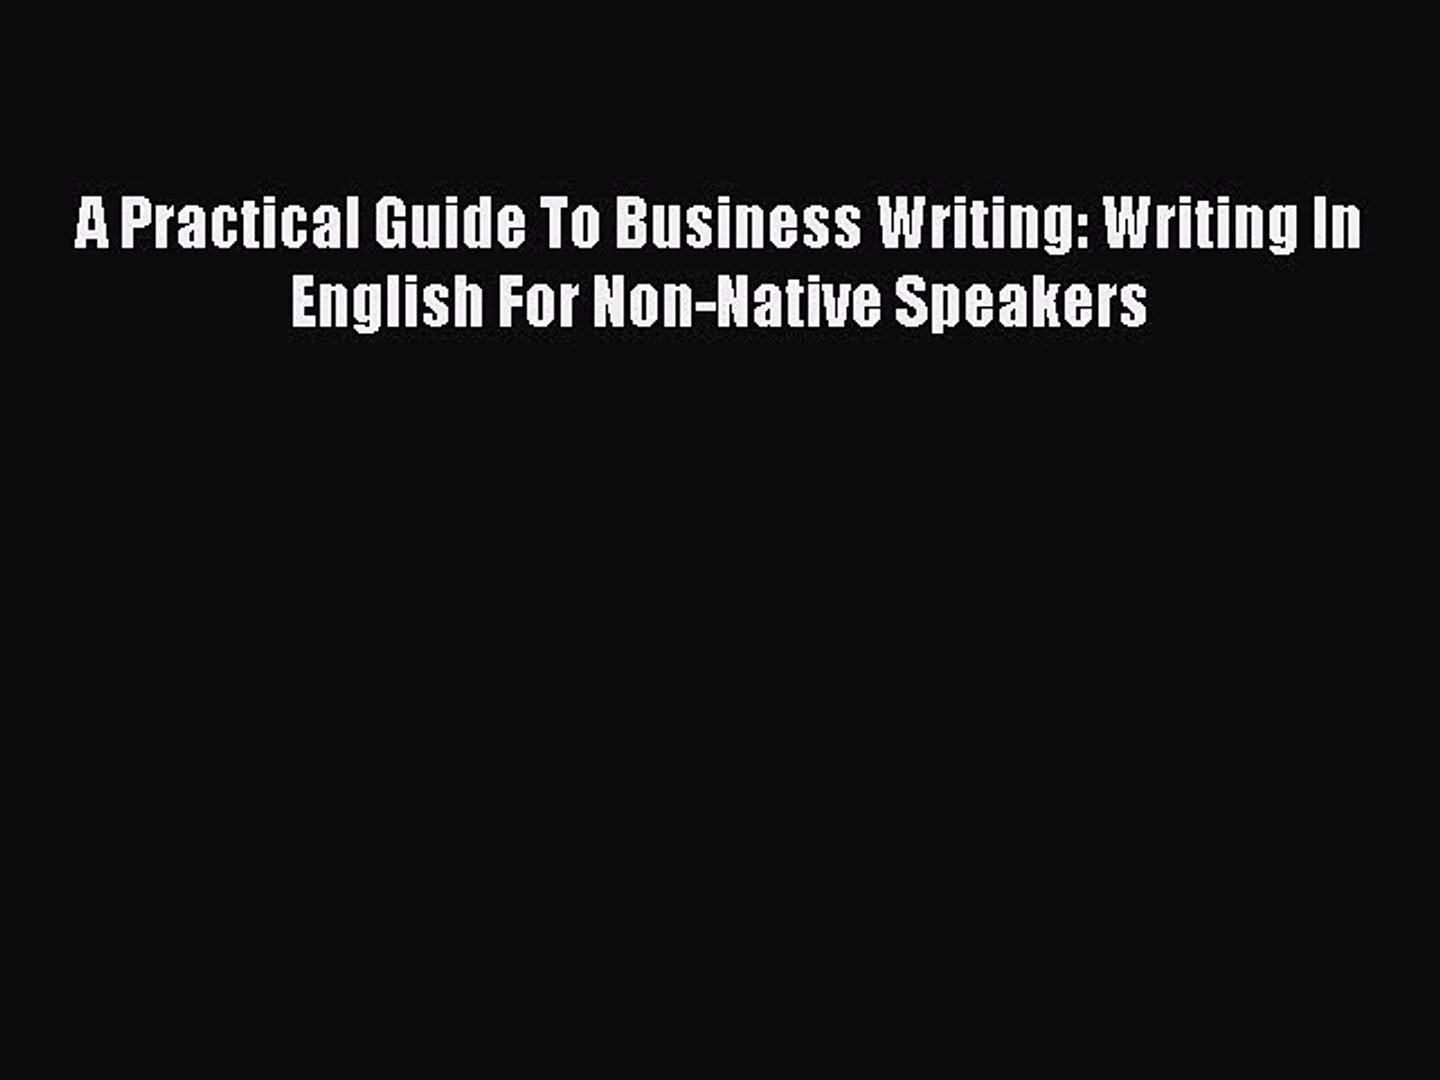 A Practical Guide To Business Writing. Writing In English For Non-Native Speakers